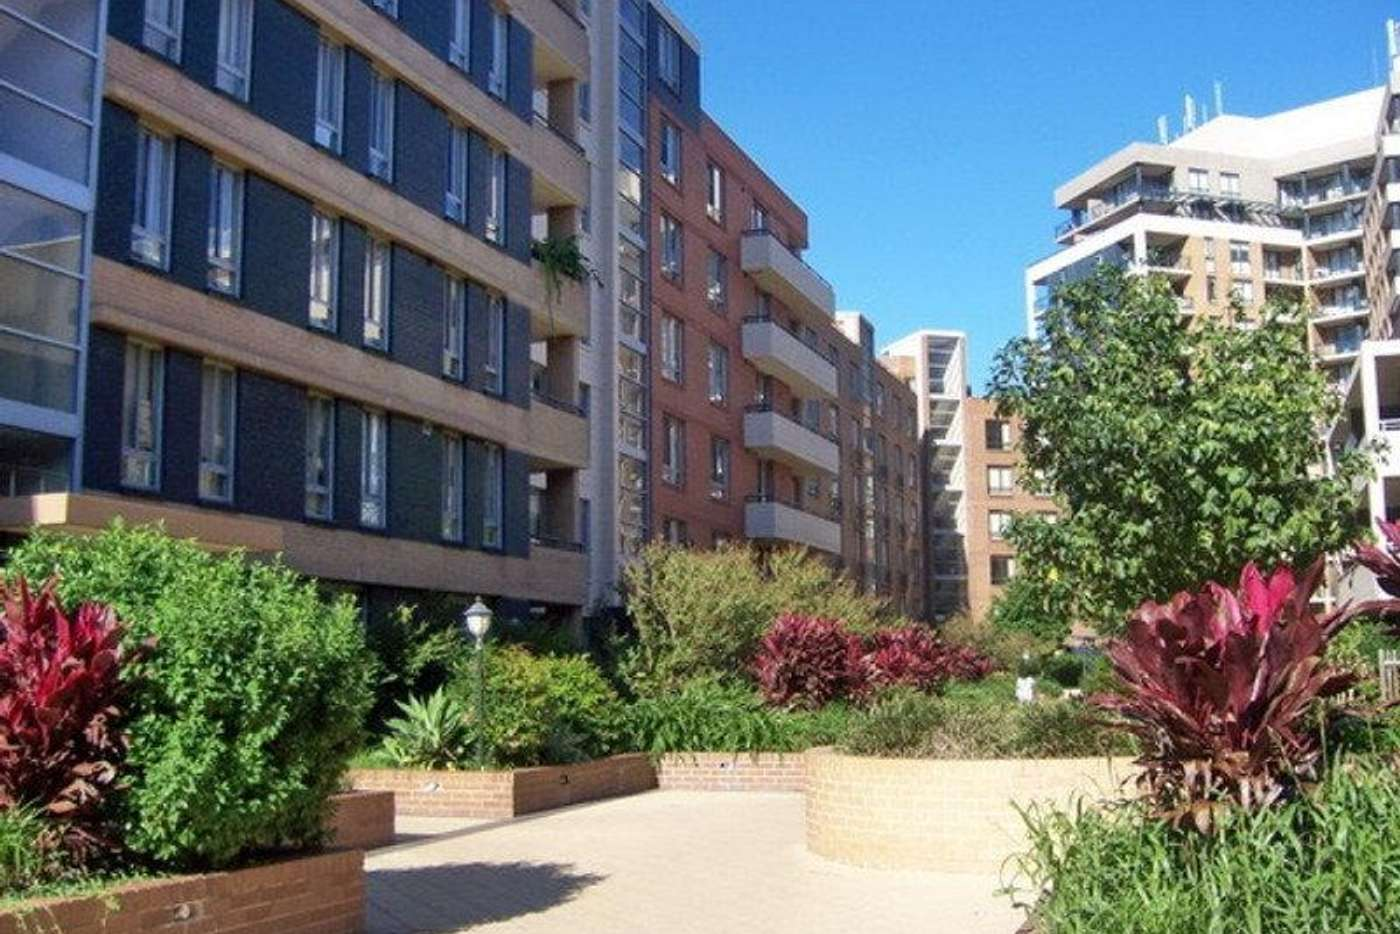 Main view of Homely apartment listing, 57 Queen Street, Auburn NSW 2144